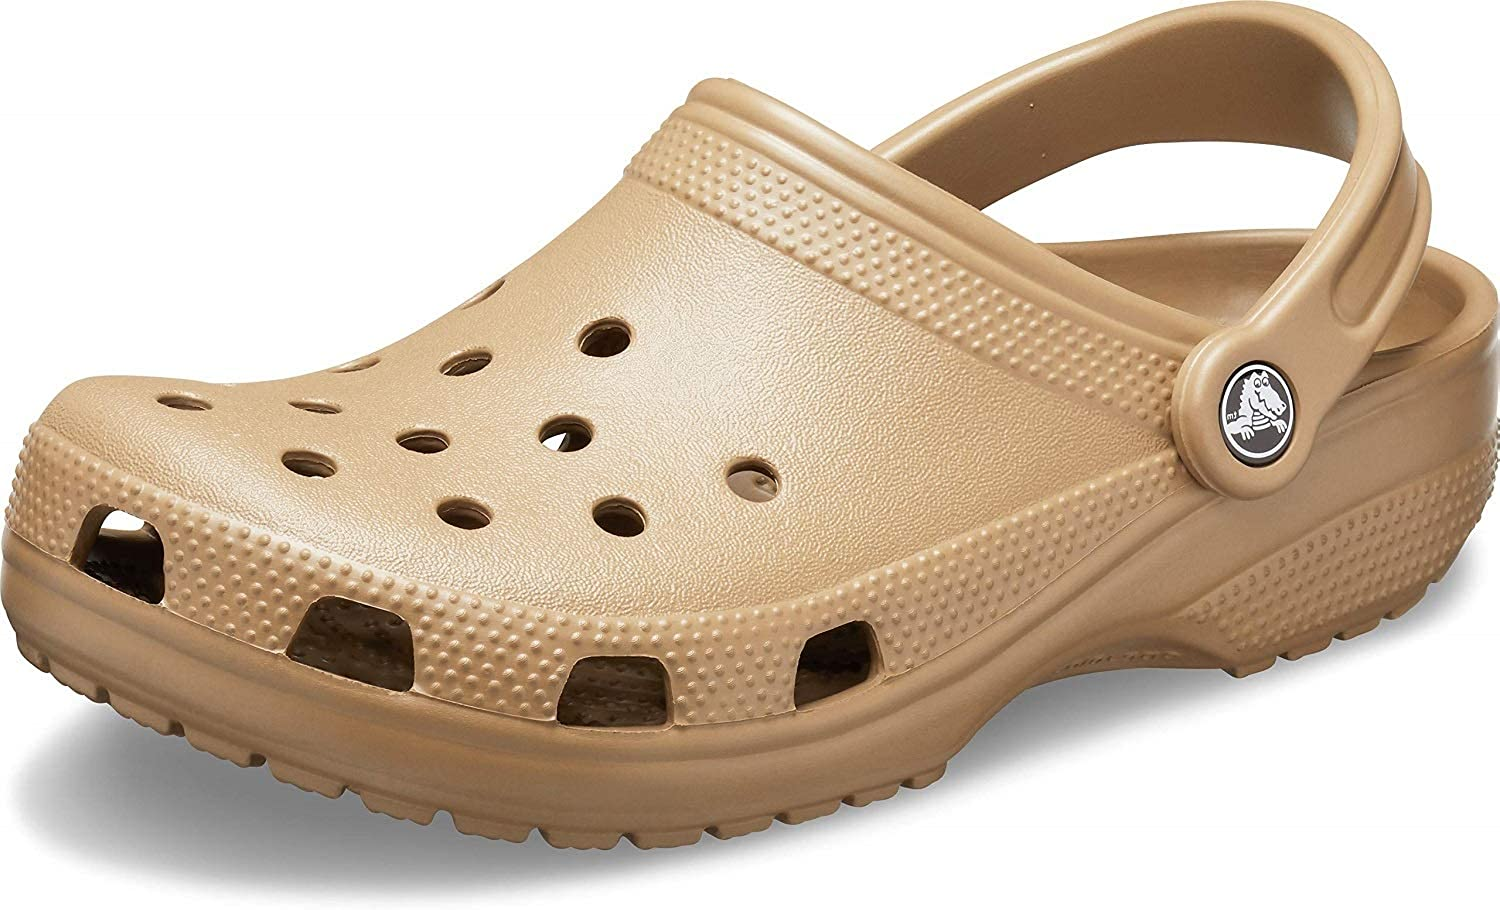   Crocs Classic Clog   Water Comfortable Slip on Shoes   Mules & Clogs